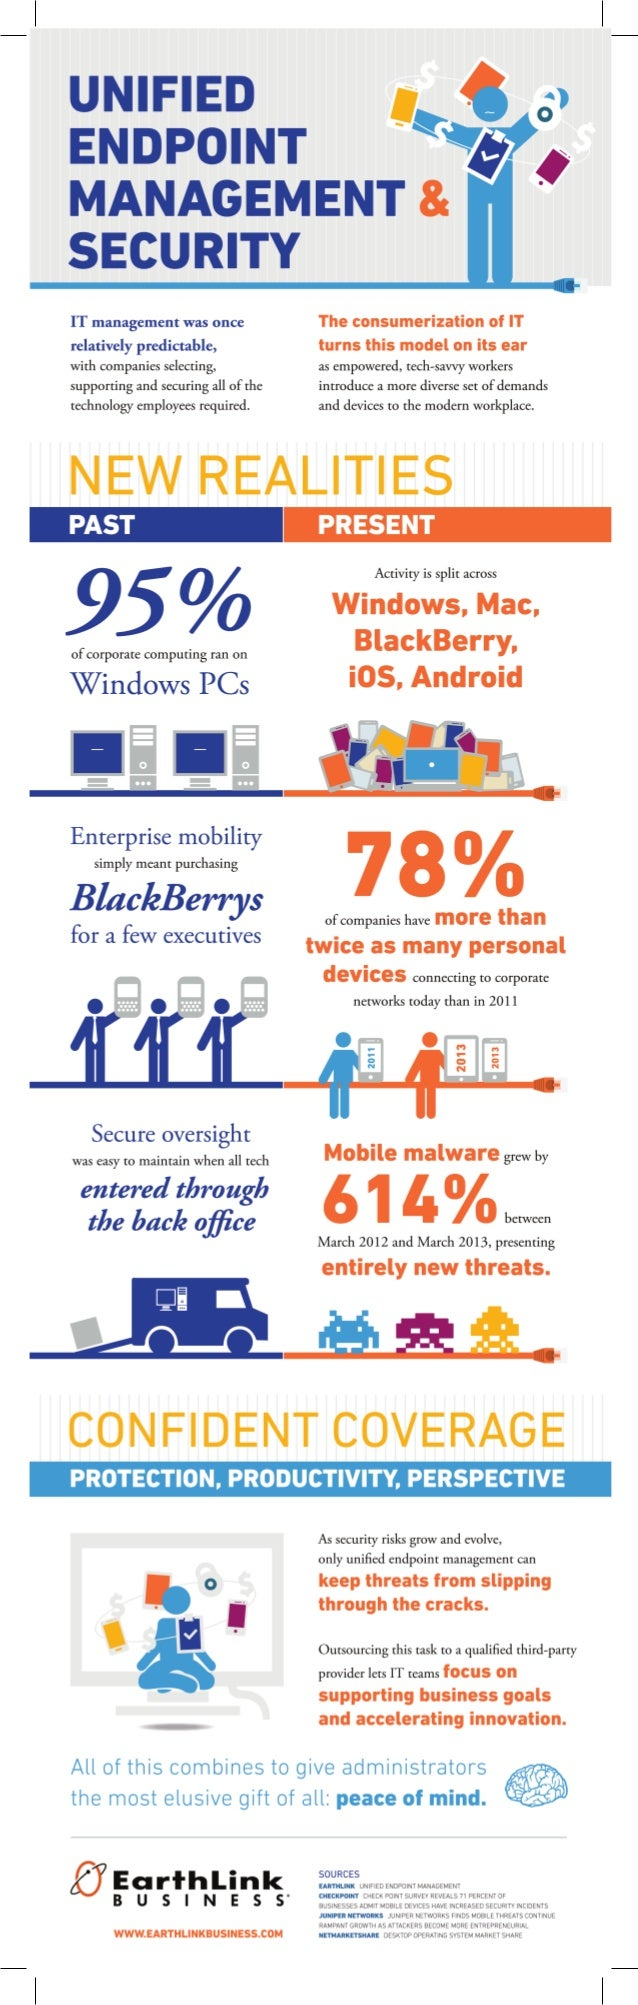 Keeping Things Simple - Unified Endpoint Management & Security | EarthLink Business